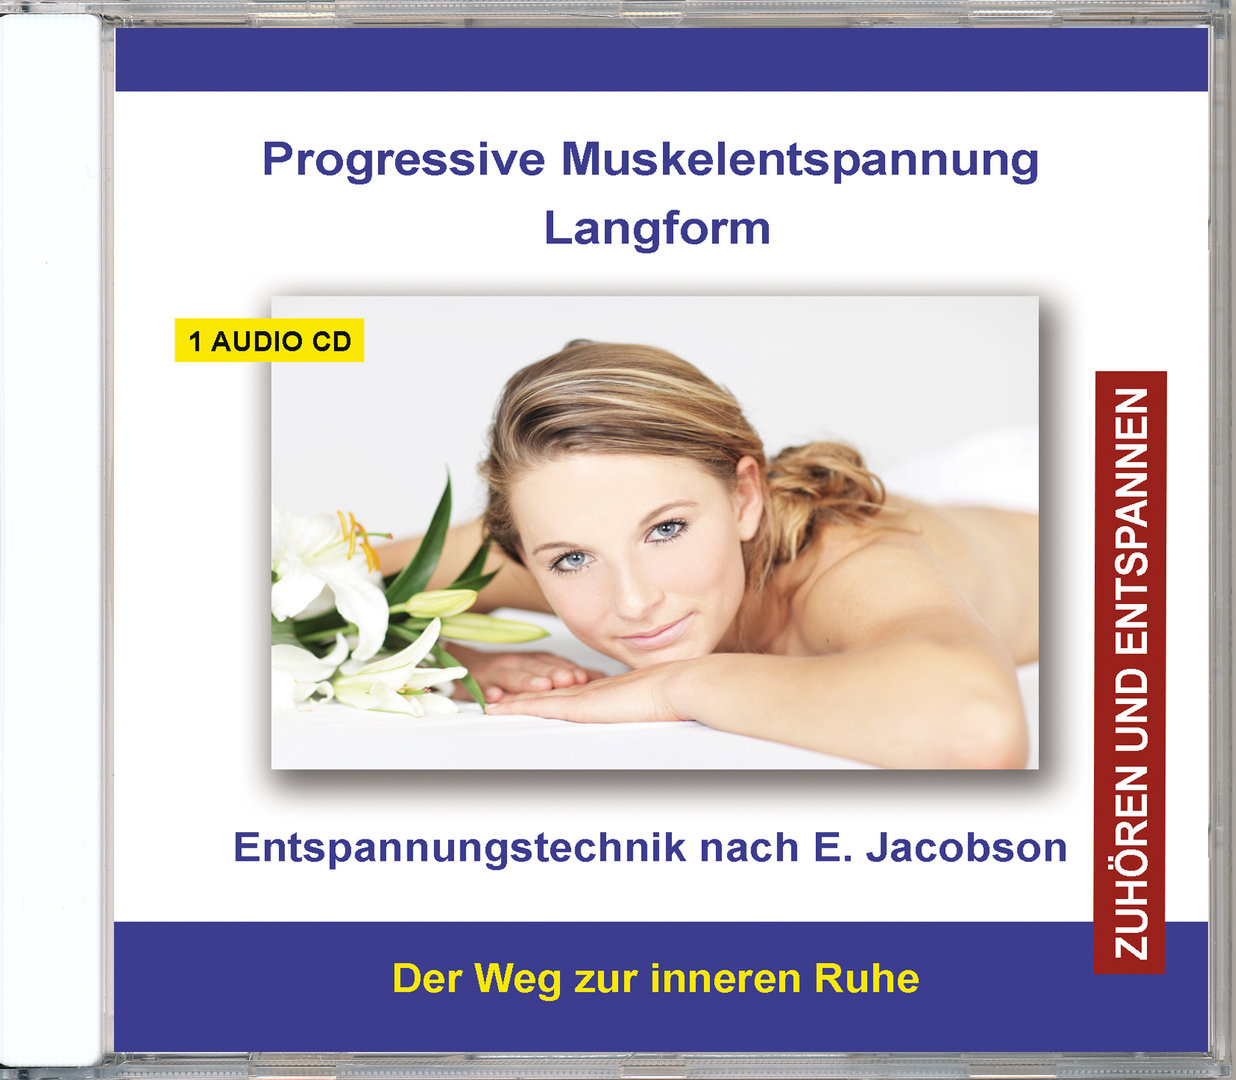 Progressive Muskelentspannung Langform - Entspannungstechnik nach E. Jacobson - Audio-CD